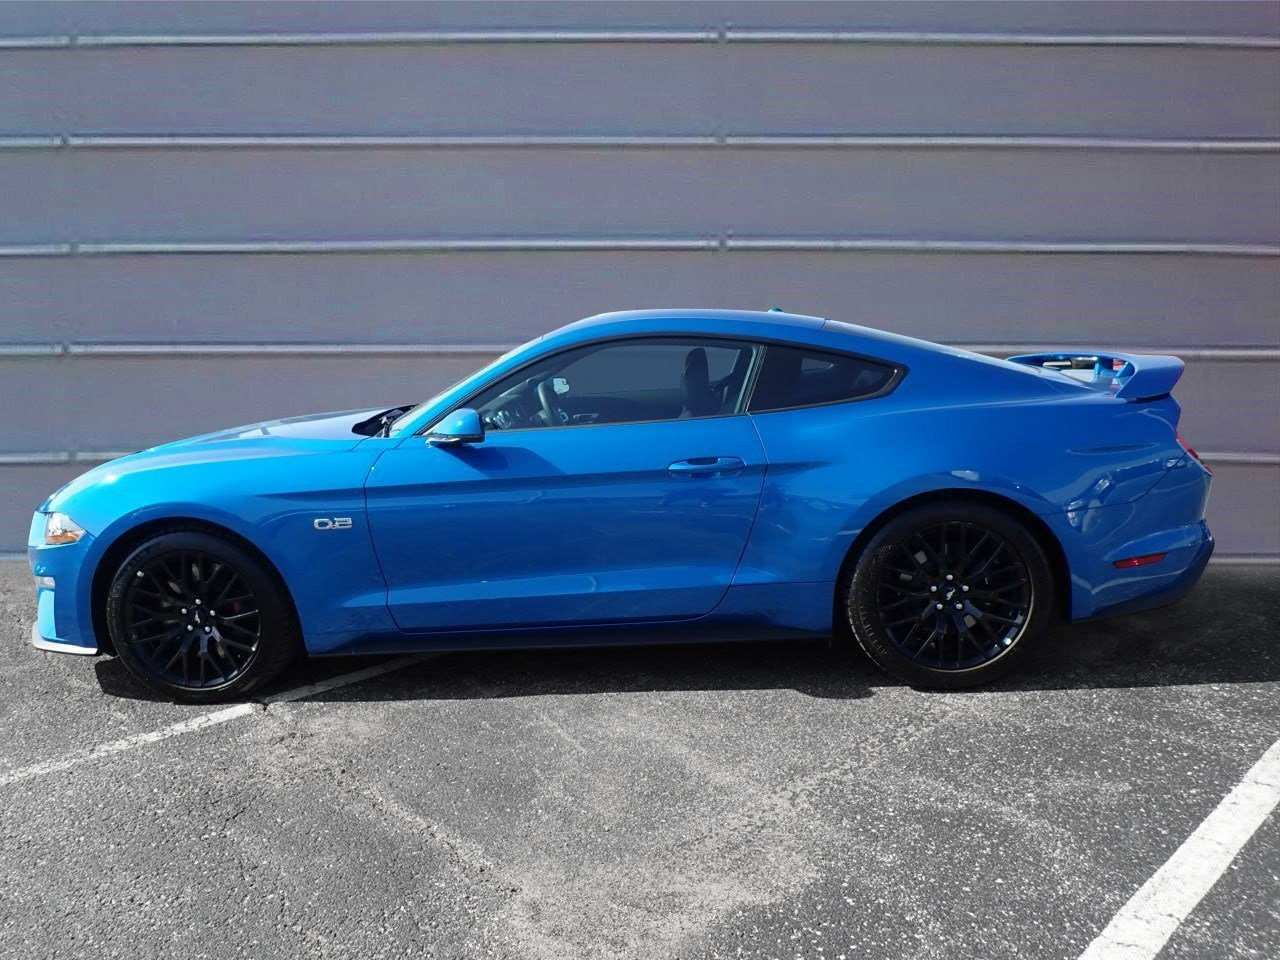 73 The Best 2019 Mustang Images